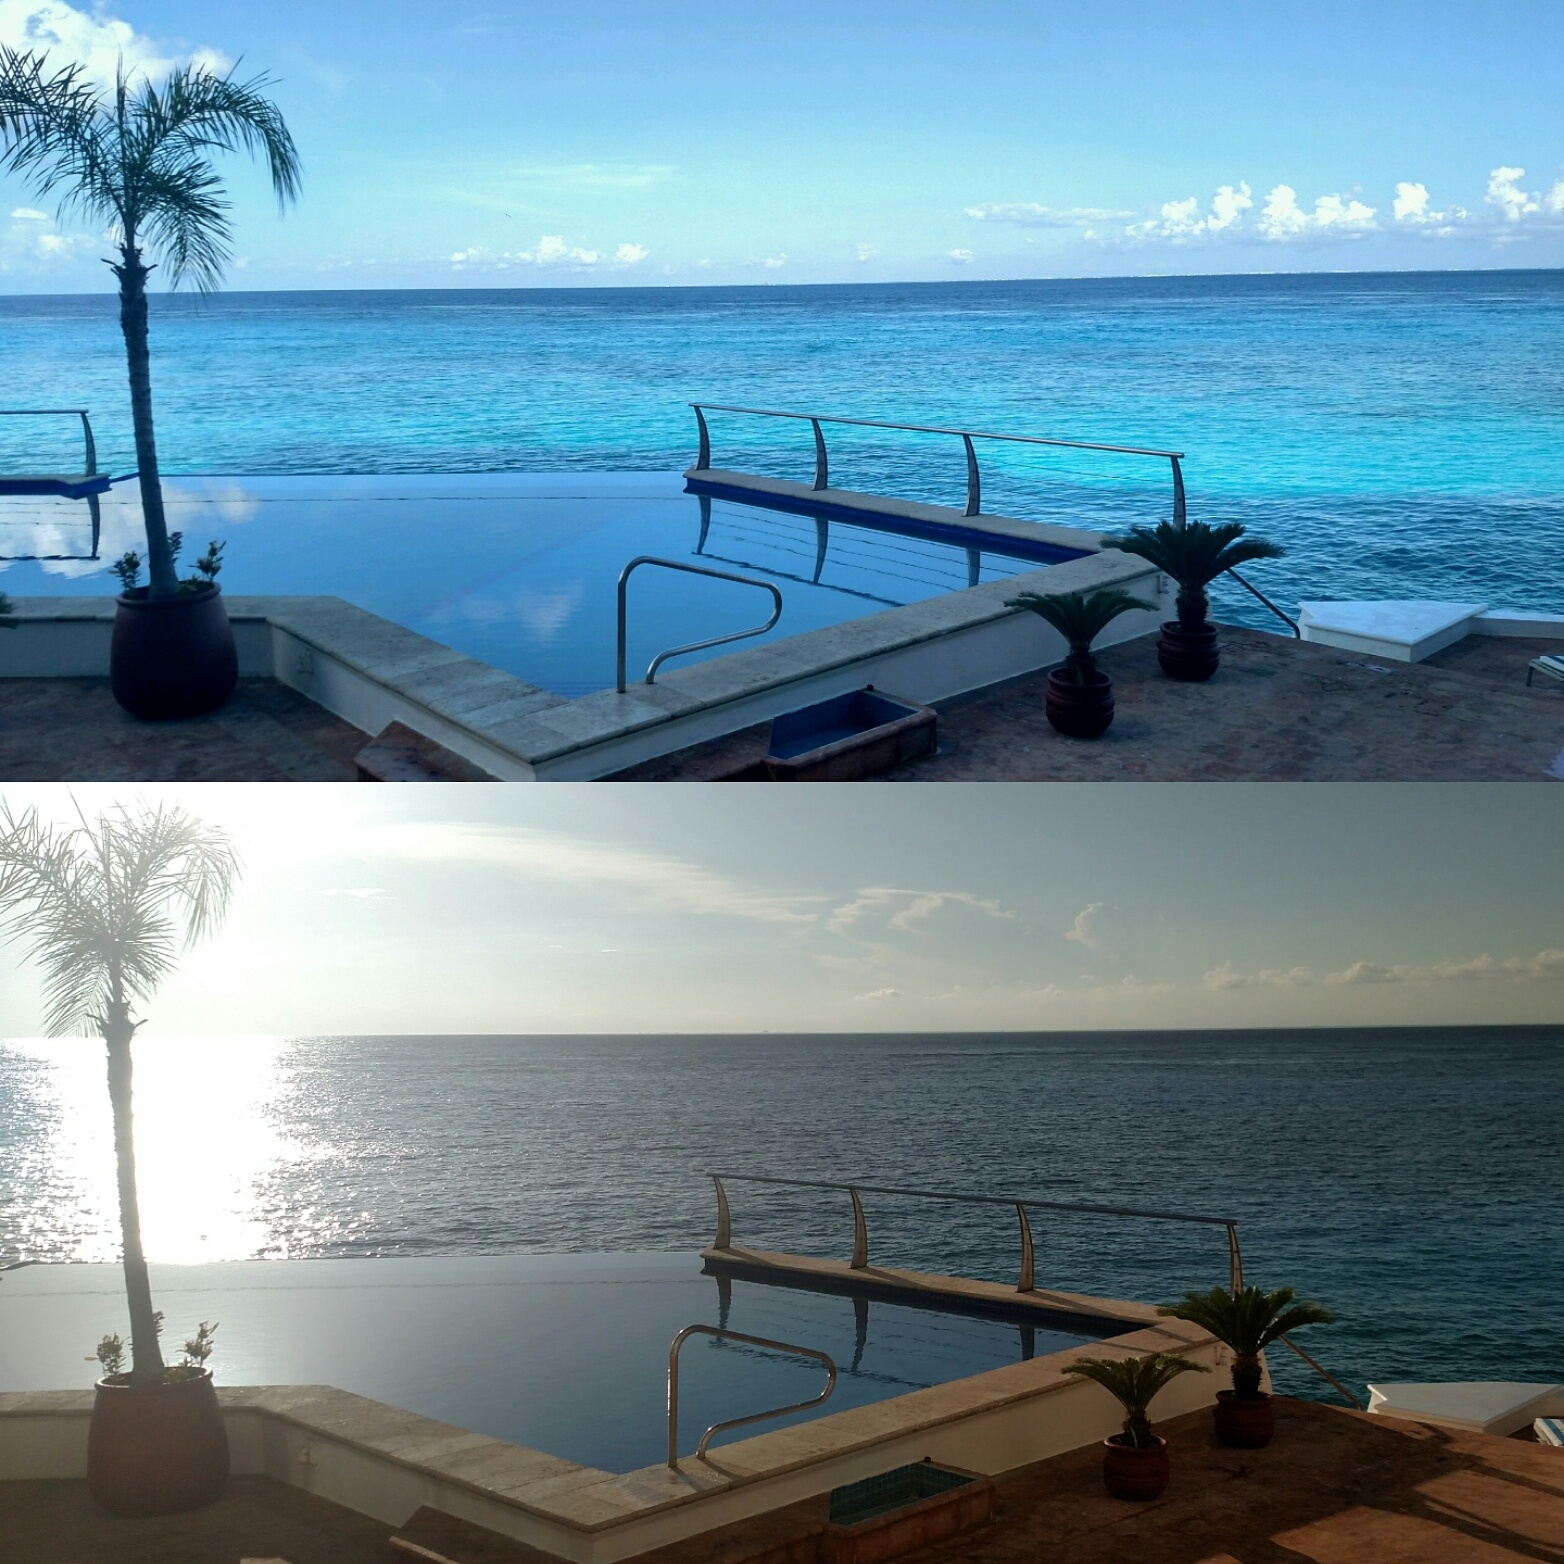 Sunrise and sunset. Same place, different time, different feels. Which one do you like better?